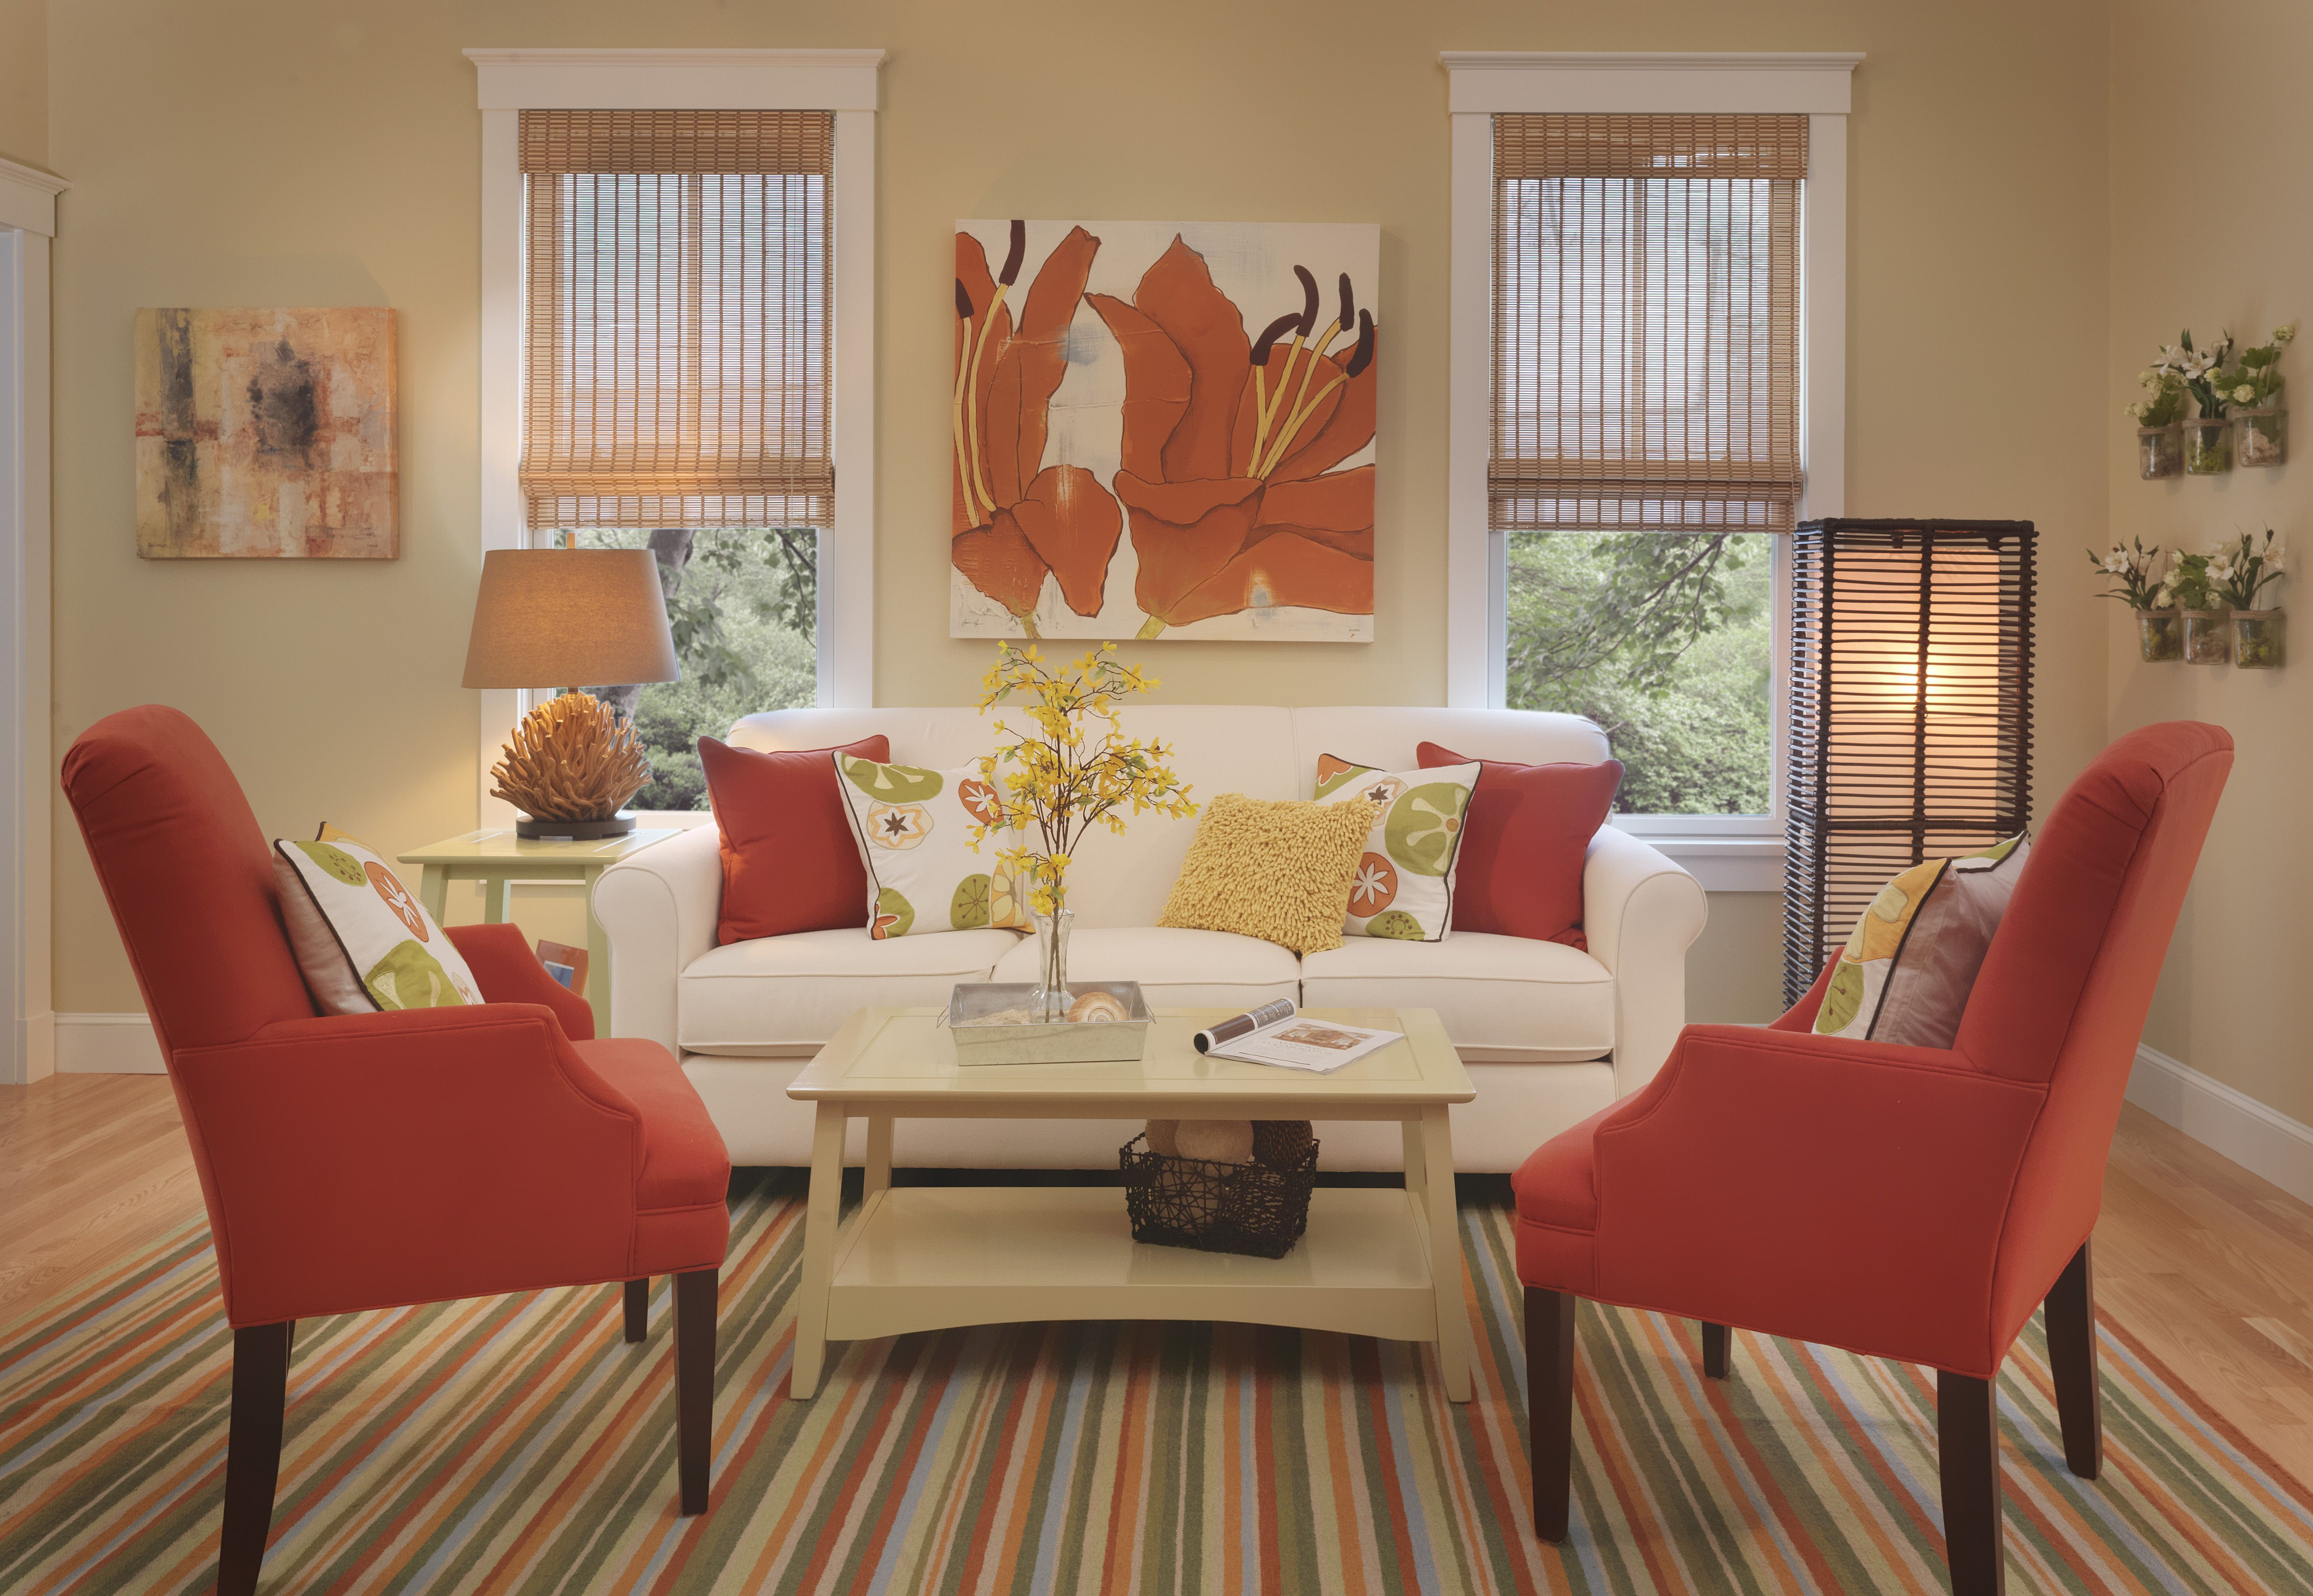 45 living room decor contemporary furniture arrangement on family picture wall ideas for living room furniture arrangements id=65744